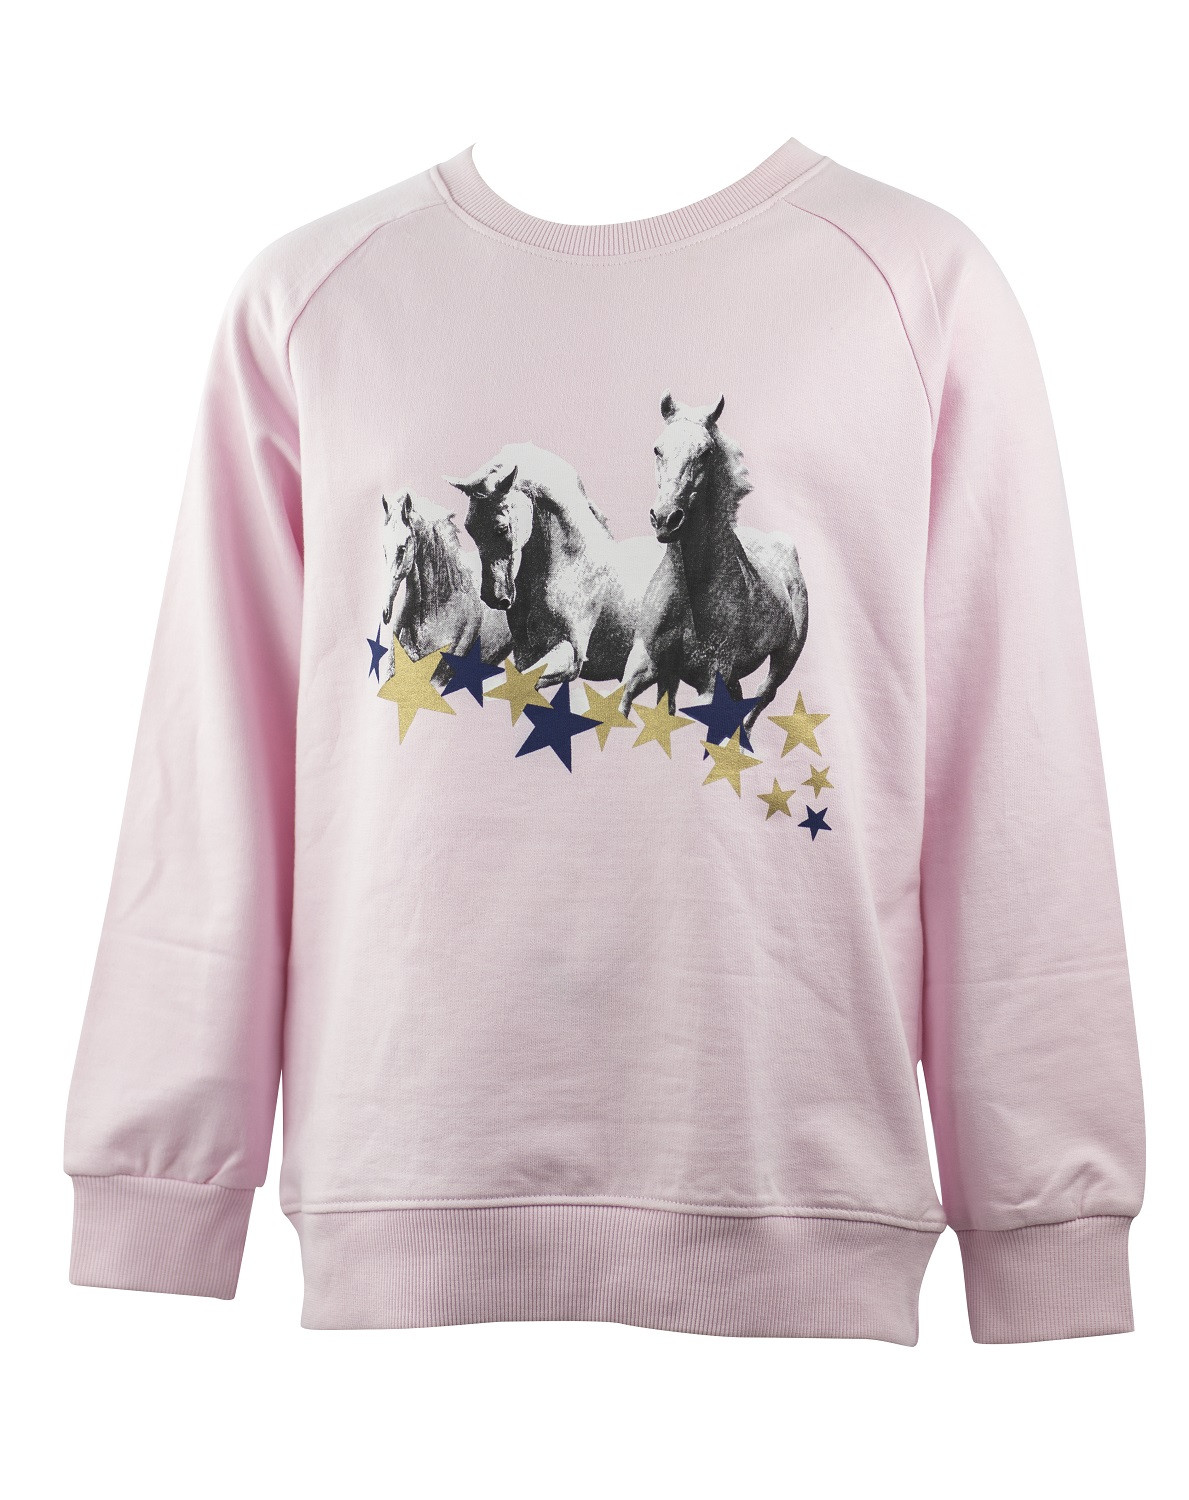 SWEATSHIRT WHITE HORSE